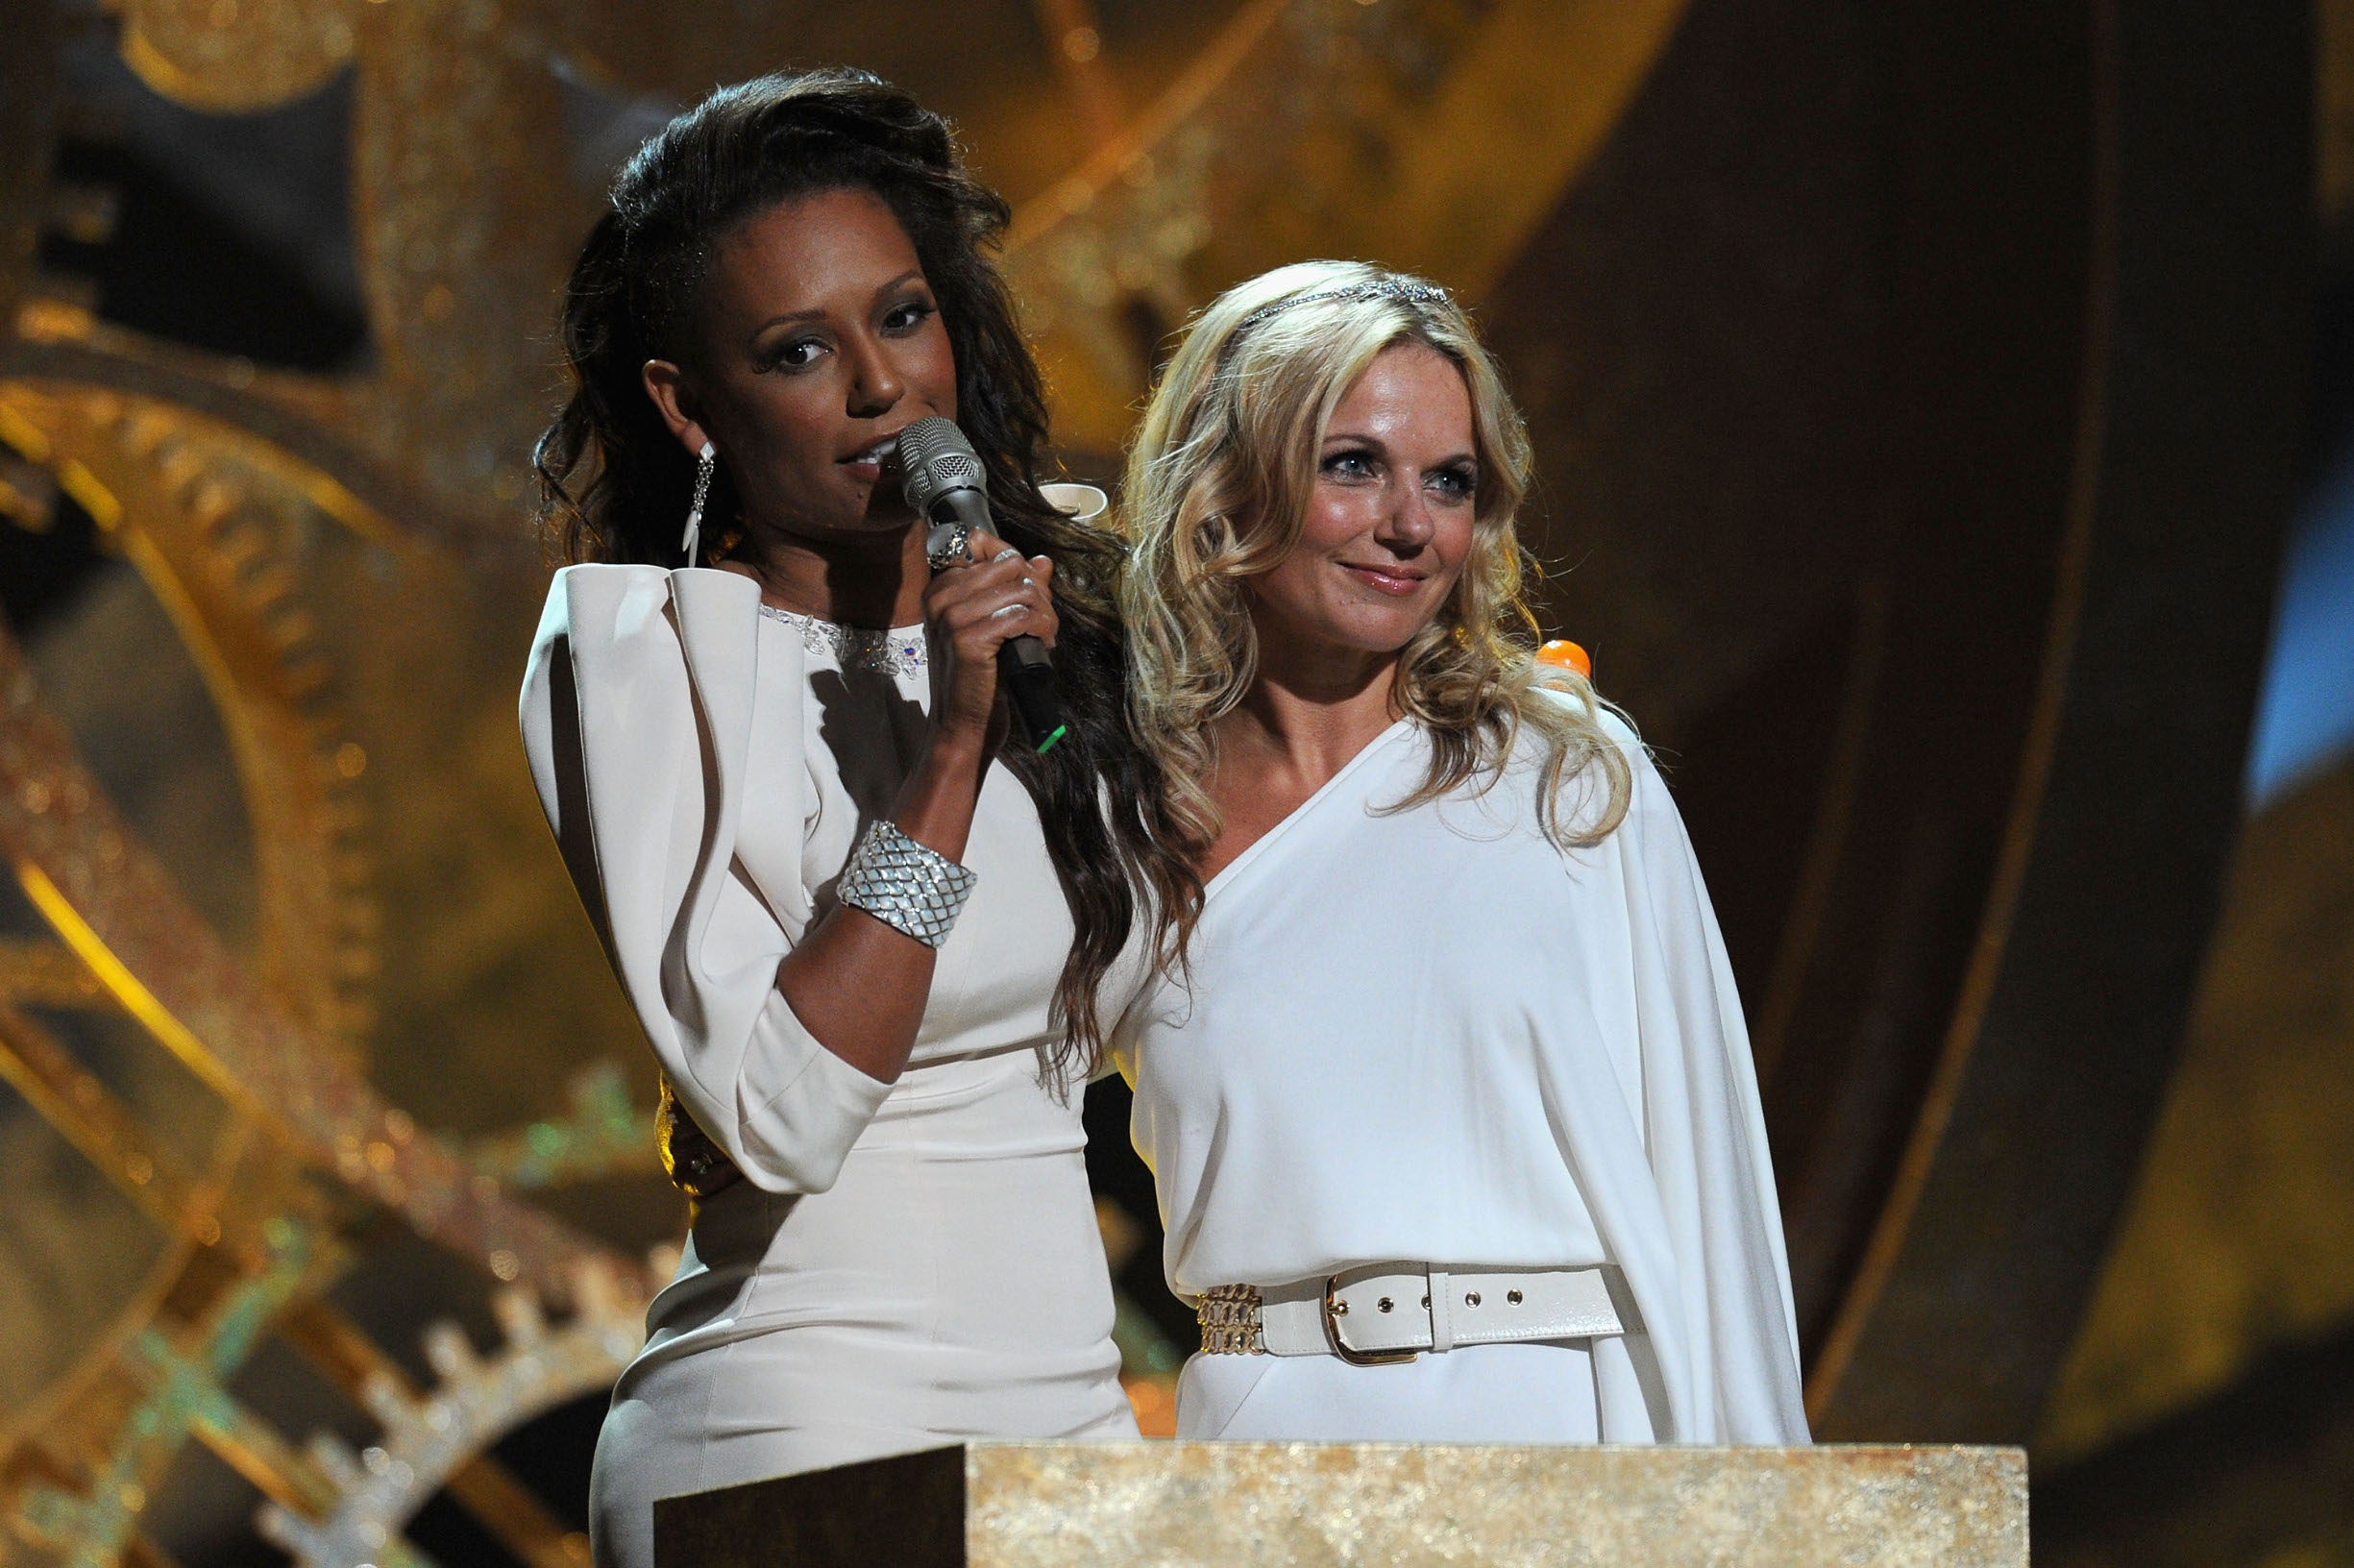 LONDON, ENGLAND - FEBRUARY 16:  Mel B and Geri Halliwell accept the Spice Girls award for 'Brits Performance of 30 Years' on stage at The Brit Awards 2010 at Earls Court on February 16, 2010 in London, England.  (Photo by Gareth Cattermole/Getty Images)